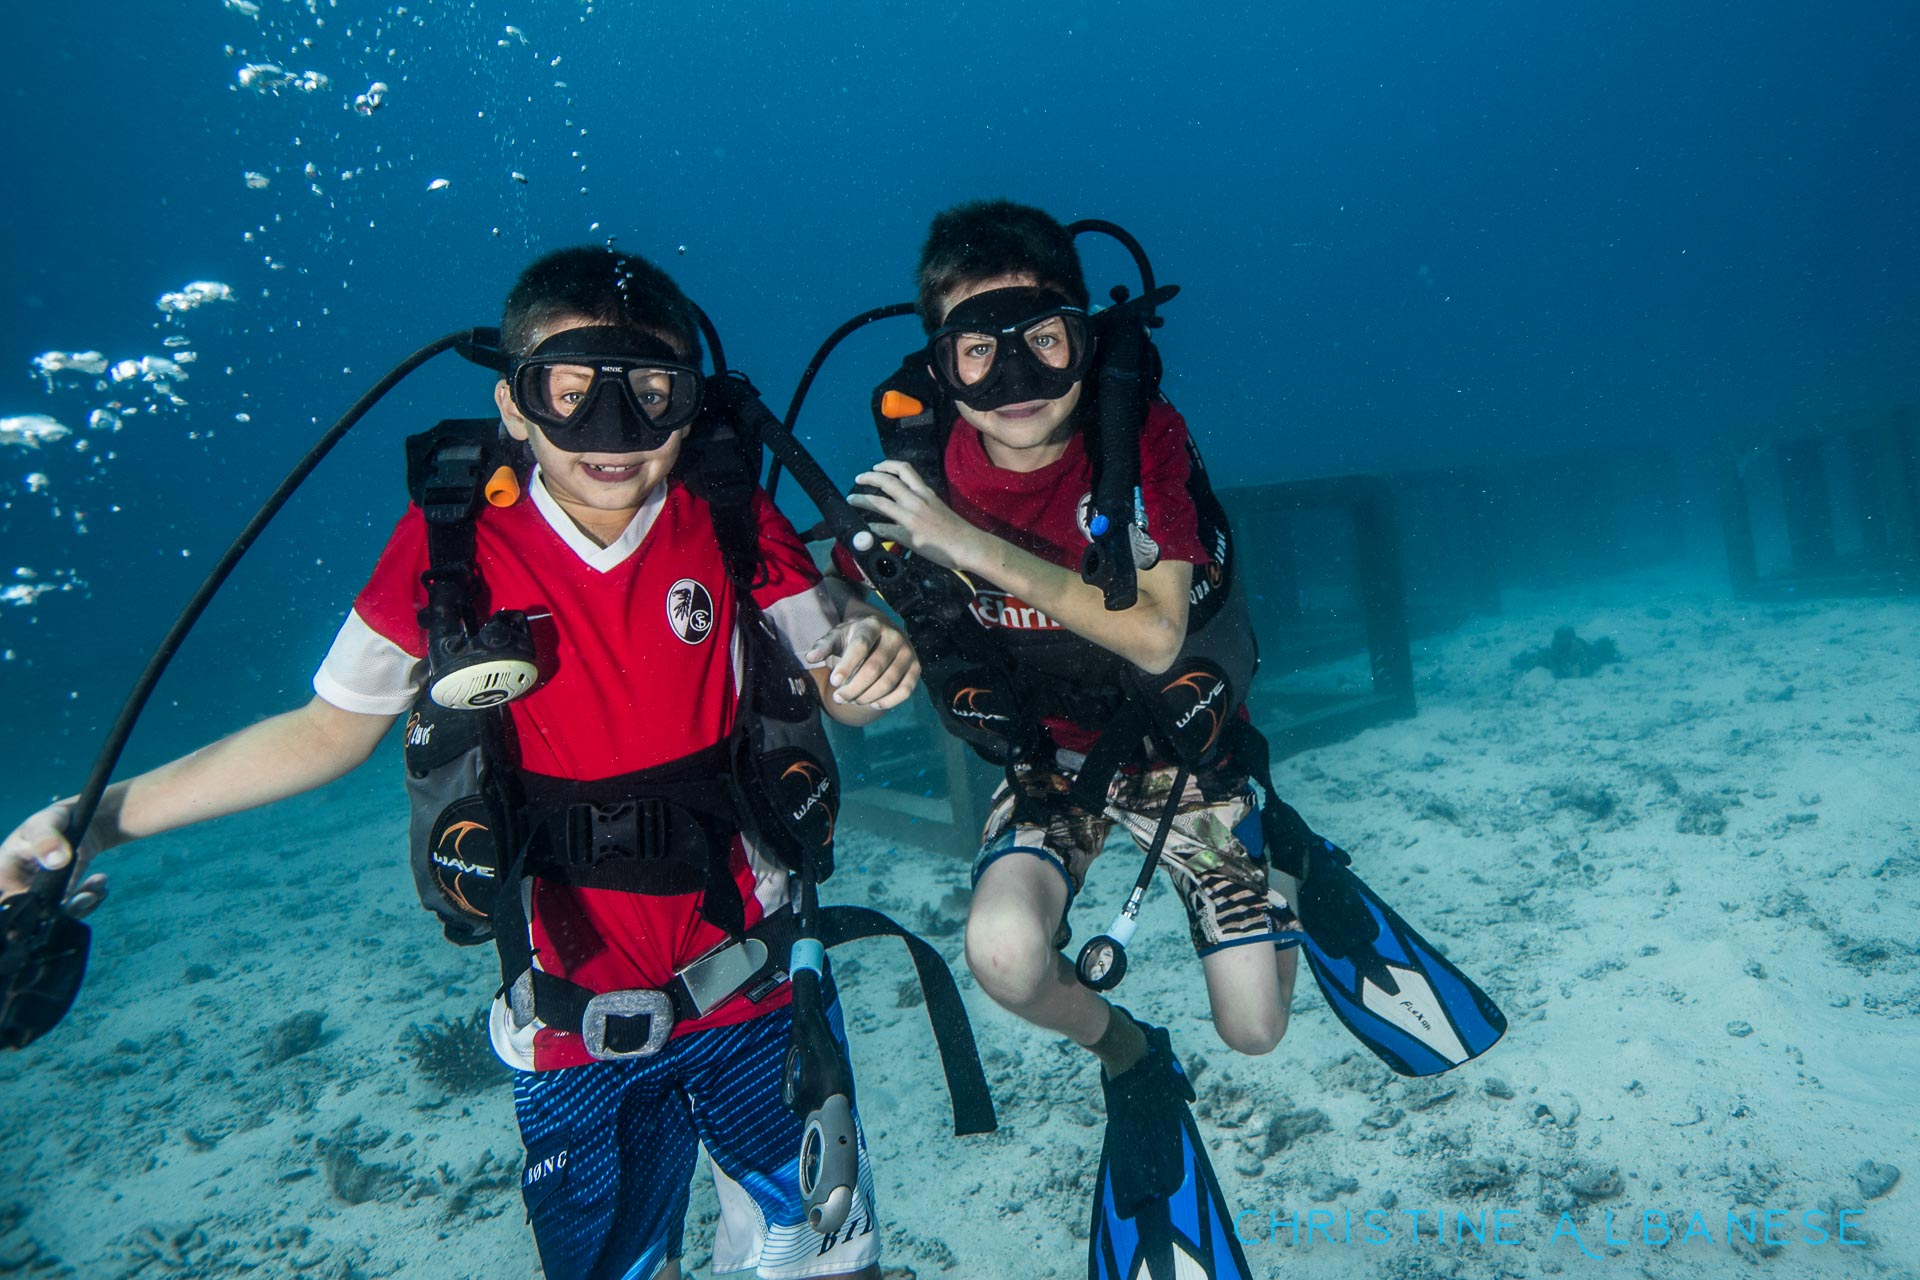 I love diving with kids! They are usually quite fearless, eager and curious thus making them amazing students. These two brothers were so much fun to photograph as they were finishing their junior open water - regs out? No problem! Mask off? Hell yeah!  #underwater #underwaterphotography #uwphotography #EarthCapture #padi #wideangle #canon6d #canon1740 #ikelite #ds160 #scuba #scubadiving #divinglife #eatsleepscuba #scubaearth #natgeo #kohtao #thailand #ocean #marinelife #adventure #discover #underwaterdiving #kids #junioropenwater #fearless